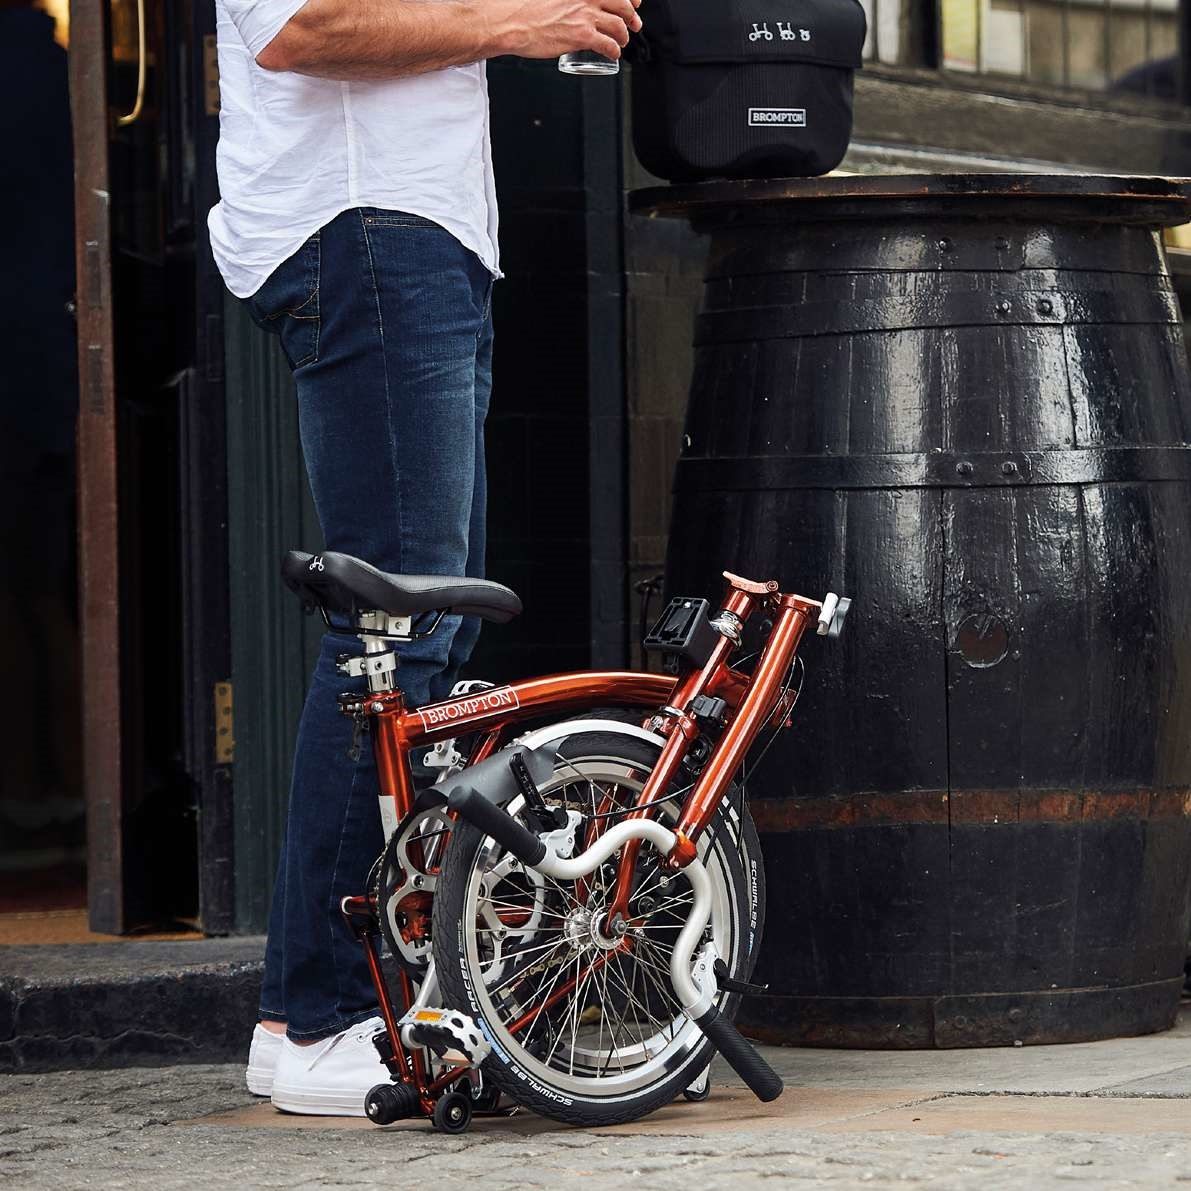 transportrad_mv_brompton (3).jpg